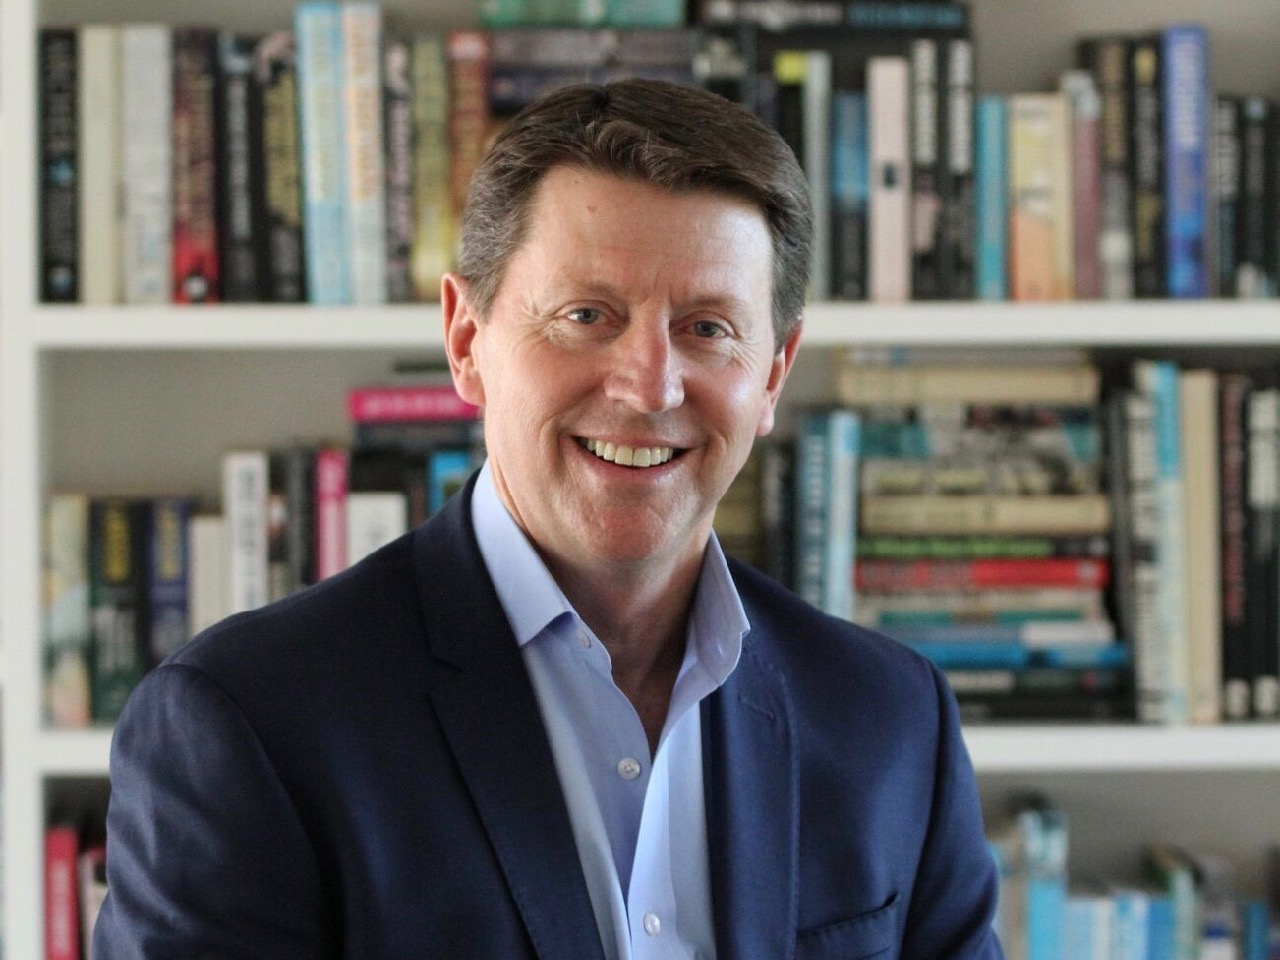 Auckland-based design tech studio RUSH appoints Bruce Cotterill to the role of chairman